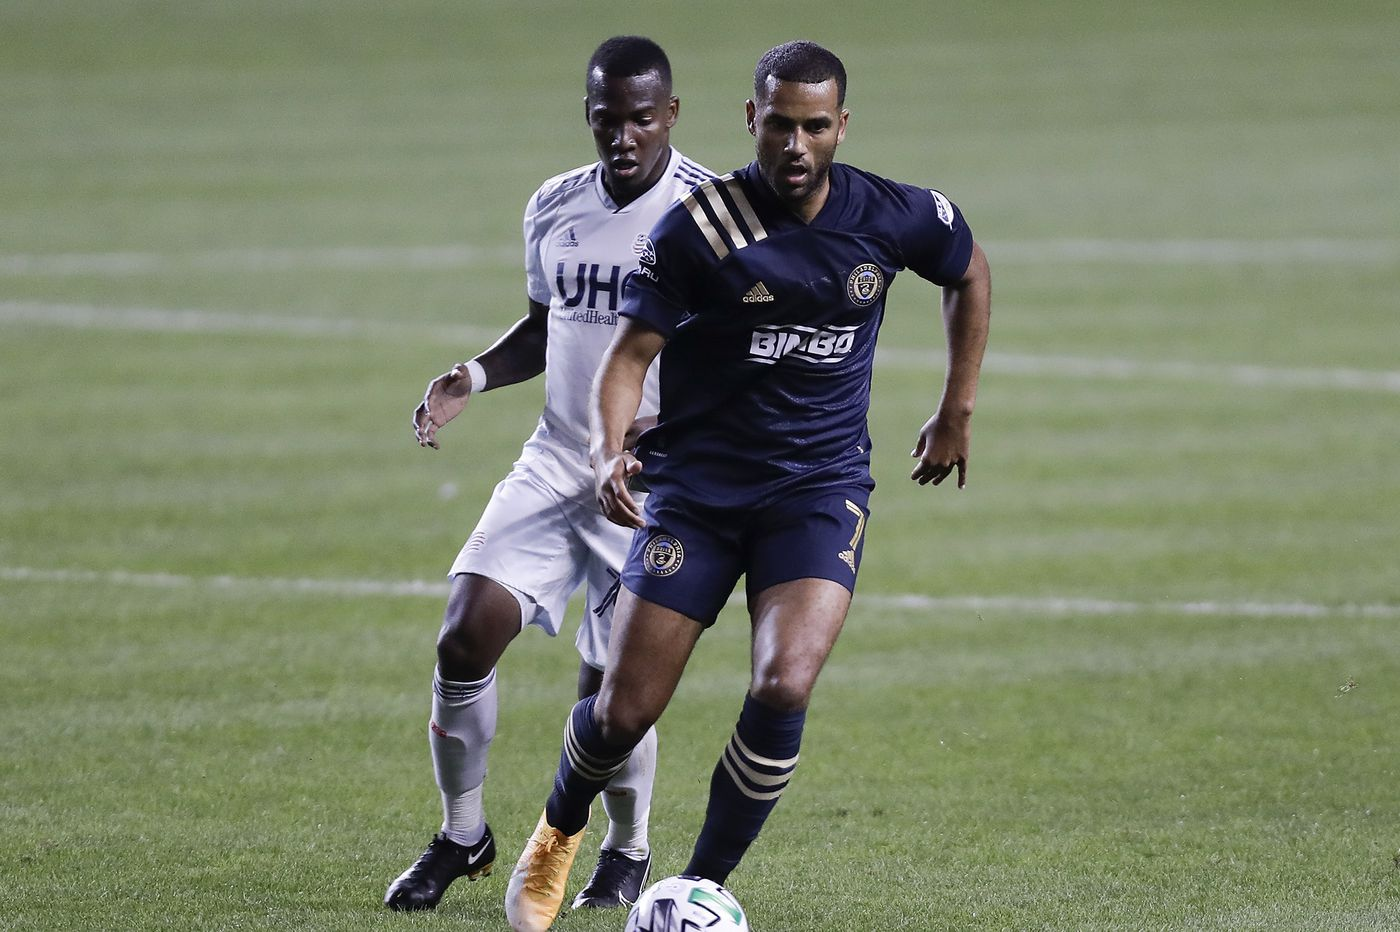 Union cut ties with Andrew Wooten and Warren Creavalle, and now go shopping to boost their attack